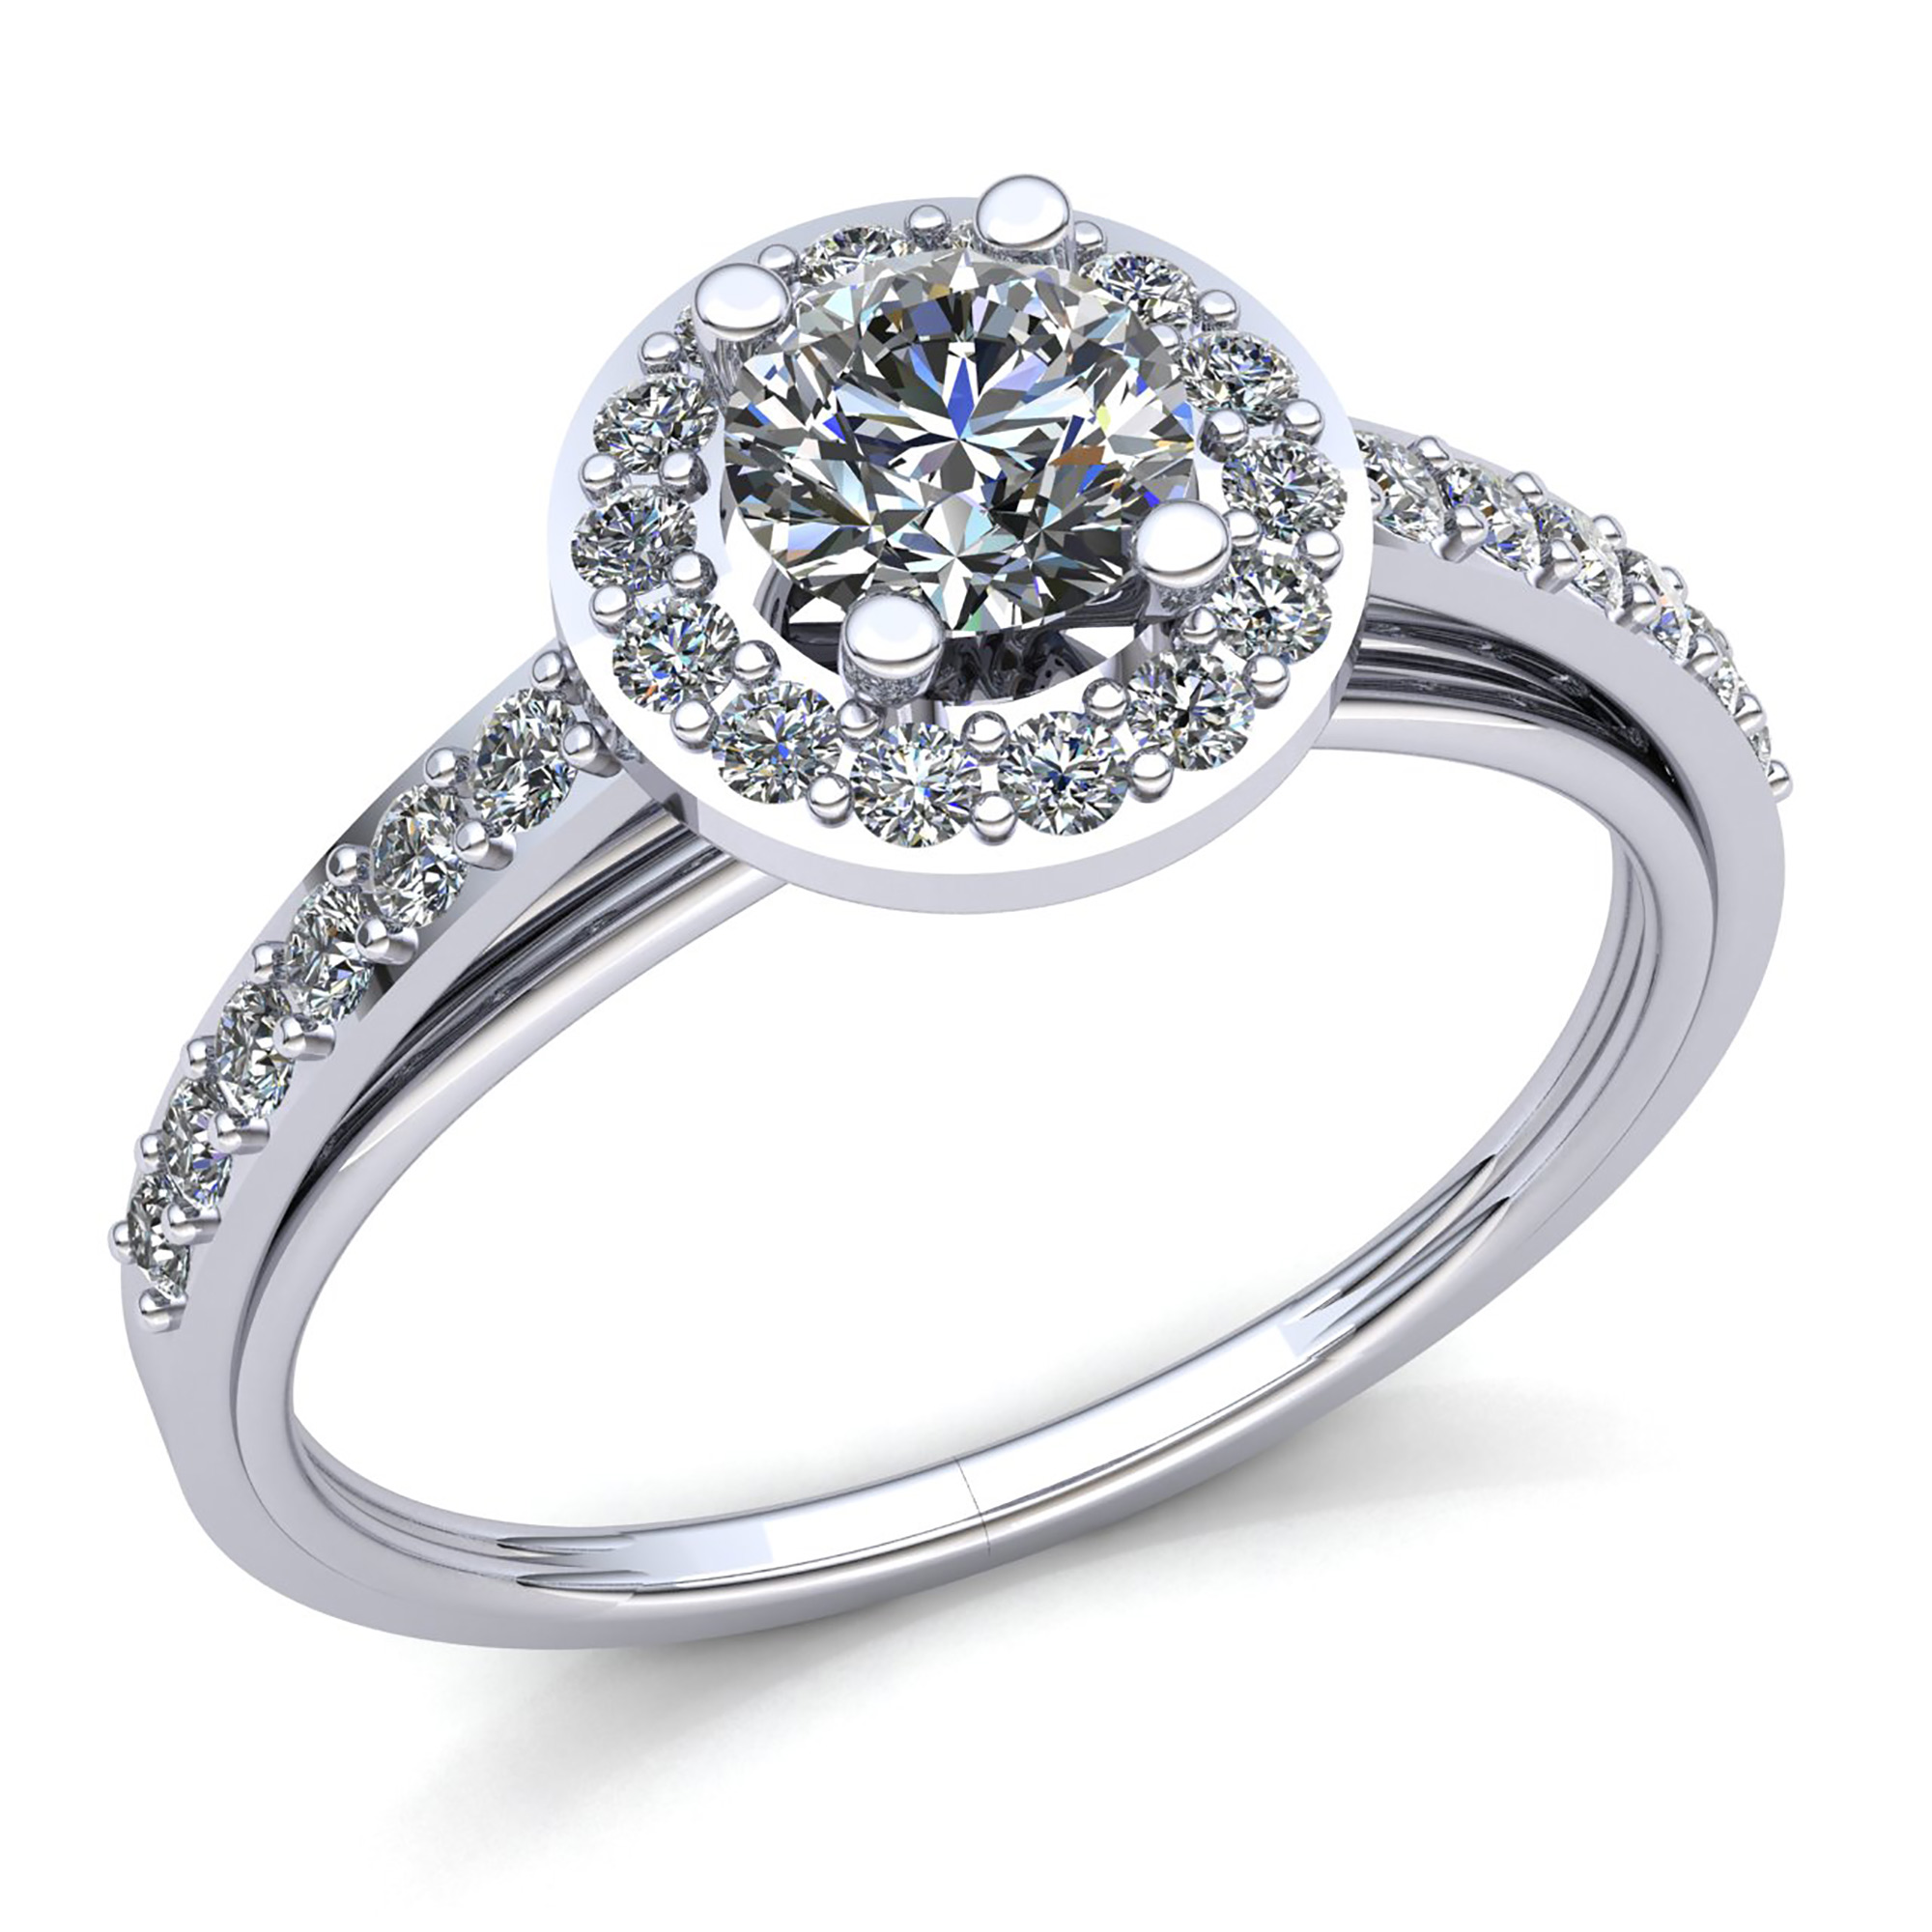 Natural 3ct Round Diamond Ladies Bridal Halo Solitaire. Women Band. Friend Rings. Hammered Gold Band. Oval Rings. Sapphire Diamond Stud Earrings. Circle Charm Bracelet. Limited Edition Watches. Brand Wedding Rings